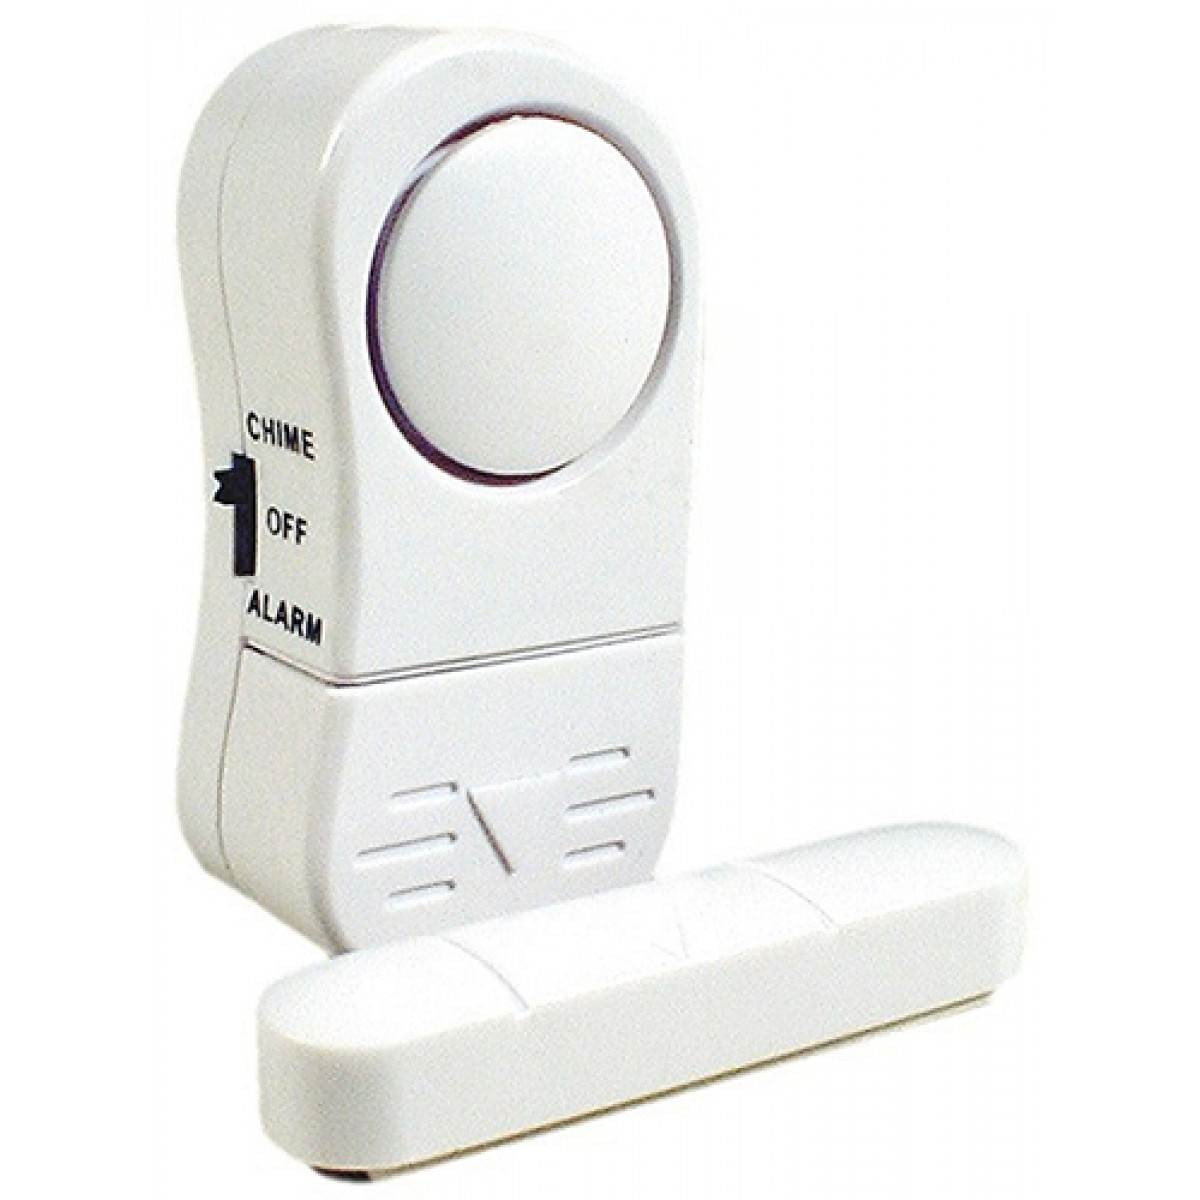 DNI6001 – Presence and Magnetic Alarm for Doors and Windows